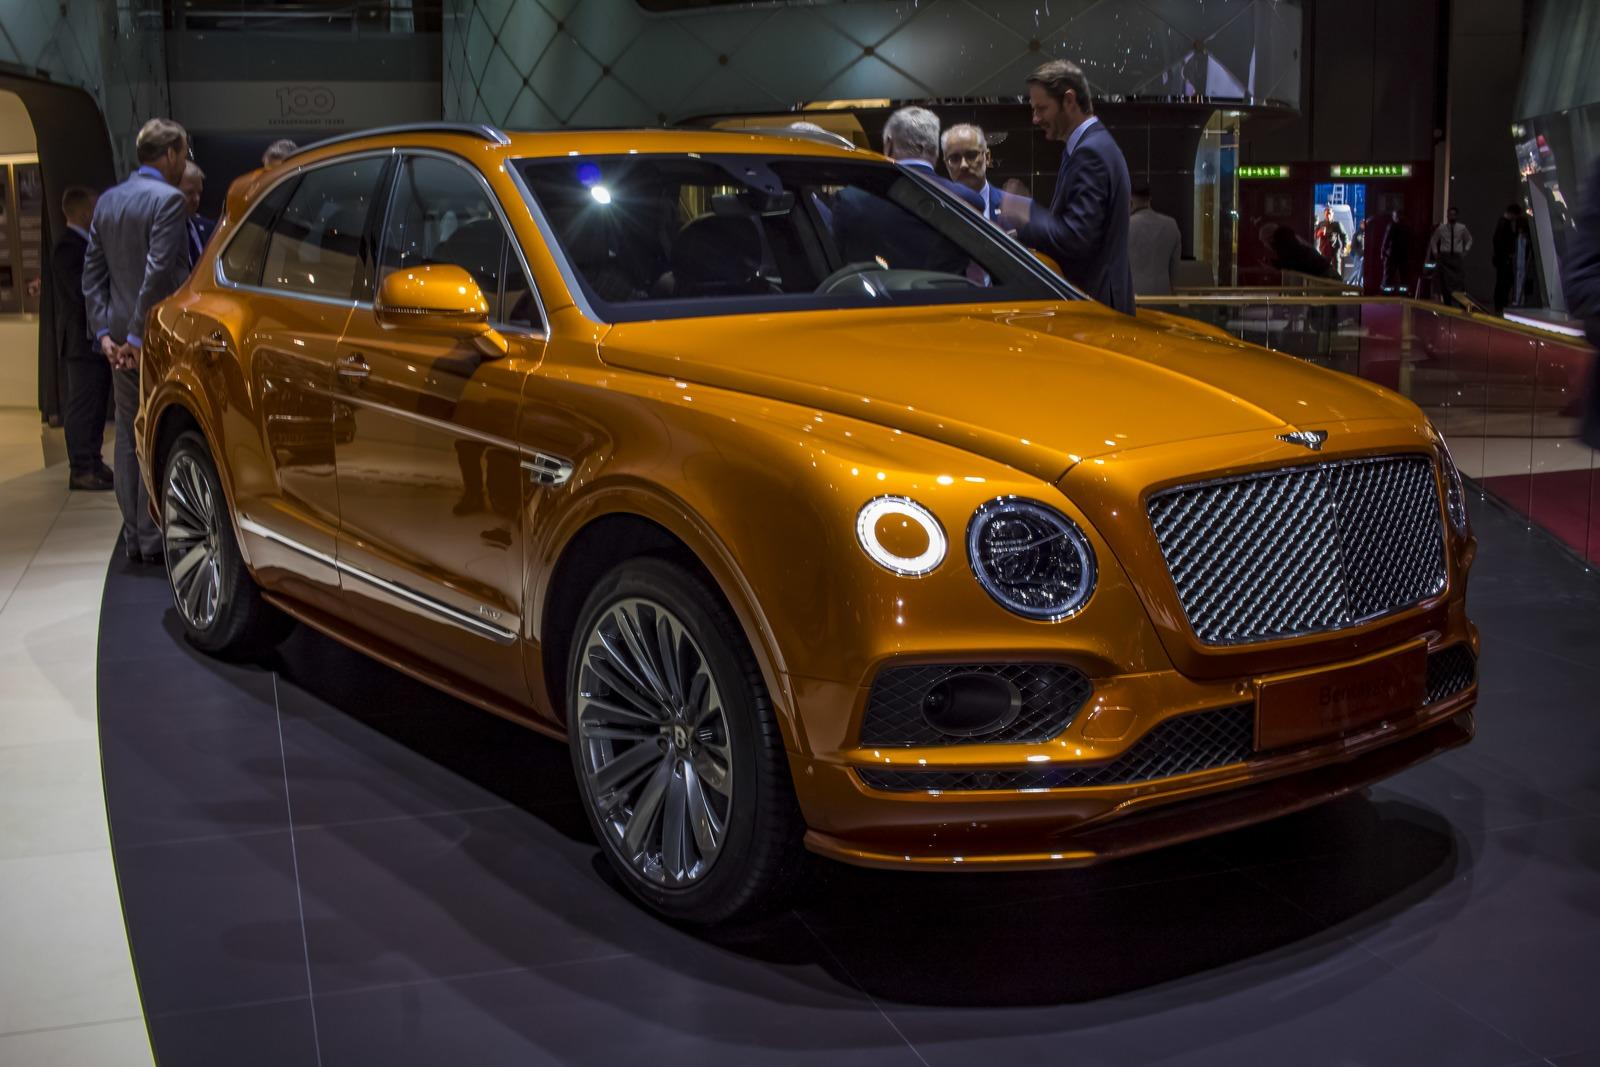 2020 Bentley Bentayga Speed Pictures, Photos, Wallpapers. | Top Speed